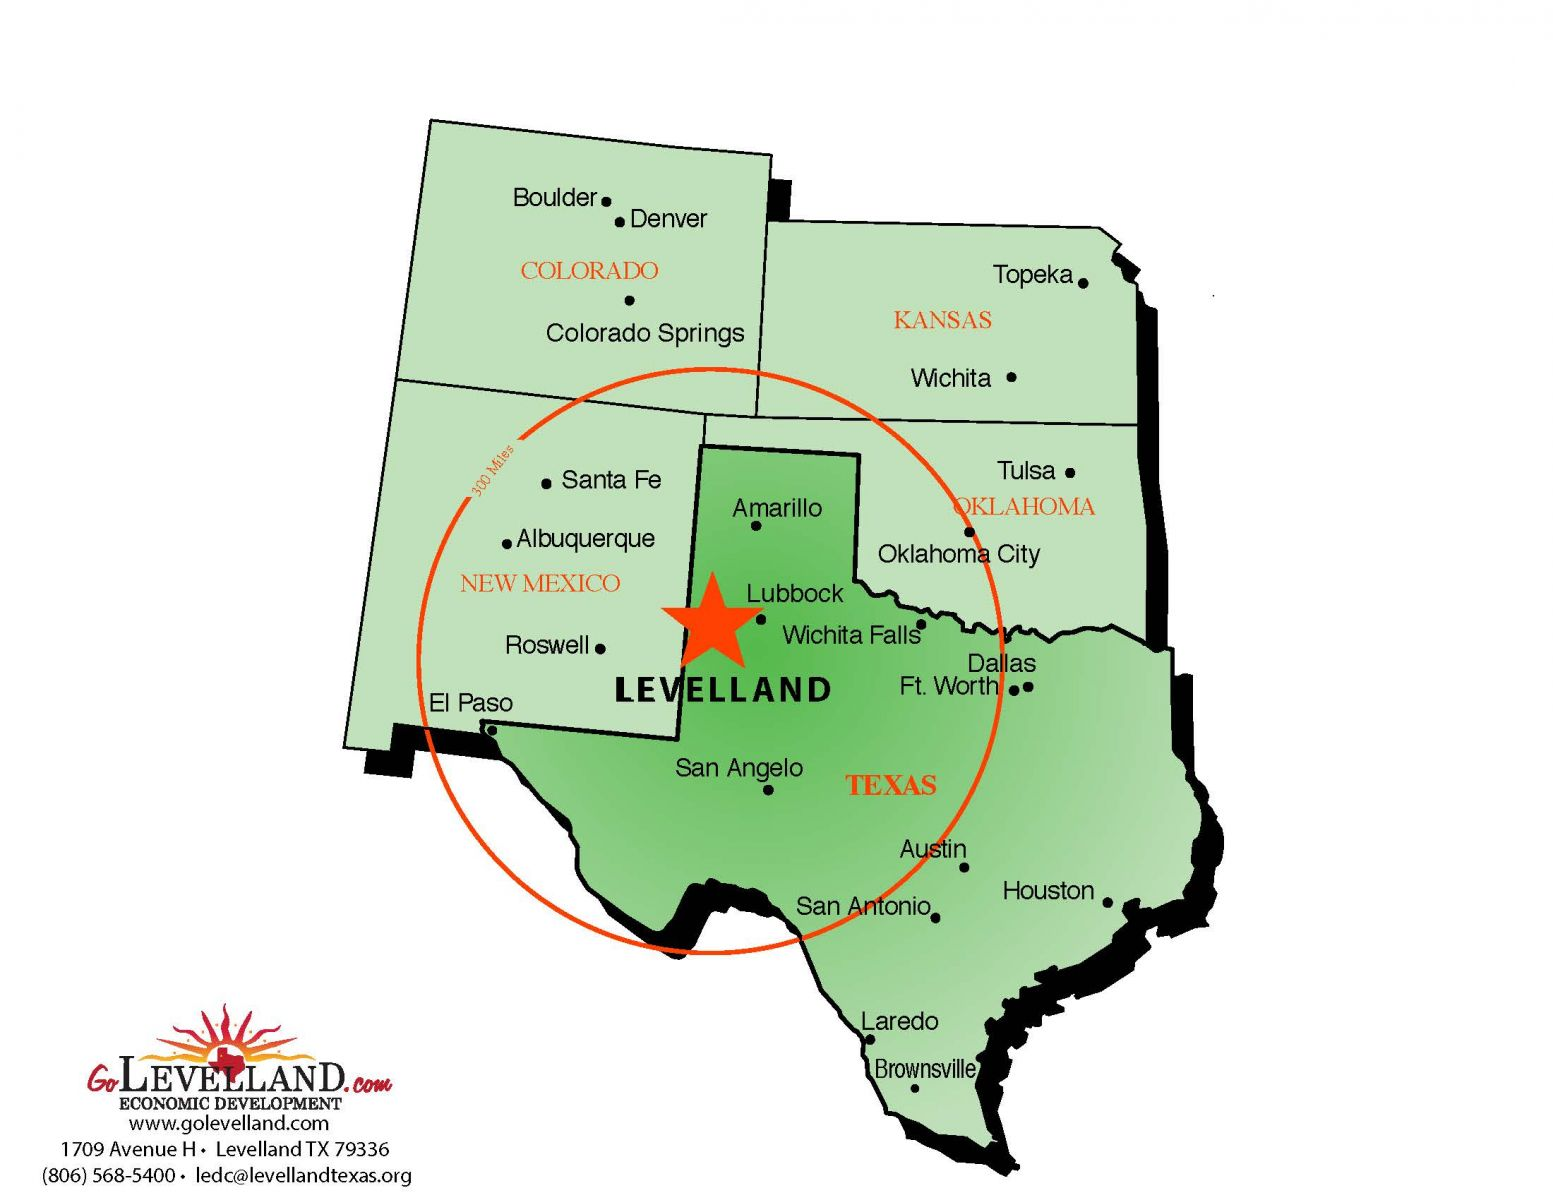 State Map Of Texas With Cities.Maps Levelland Economic Development